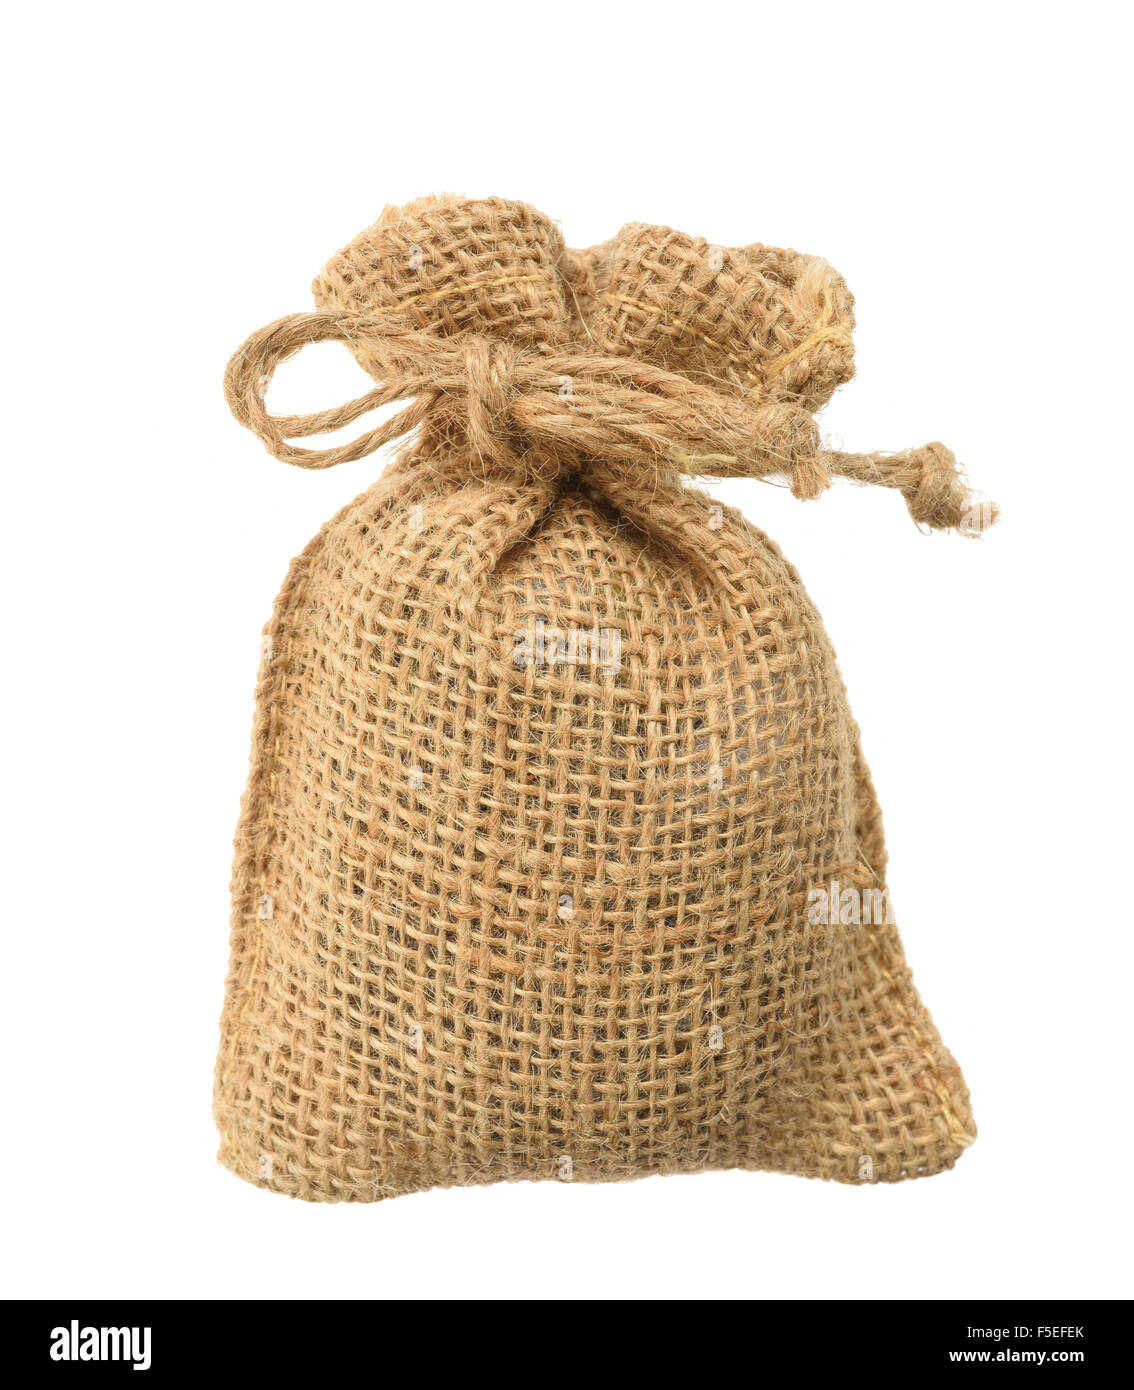 Hessian sack with ties forming over white background - Stock Image